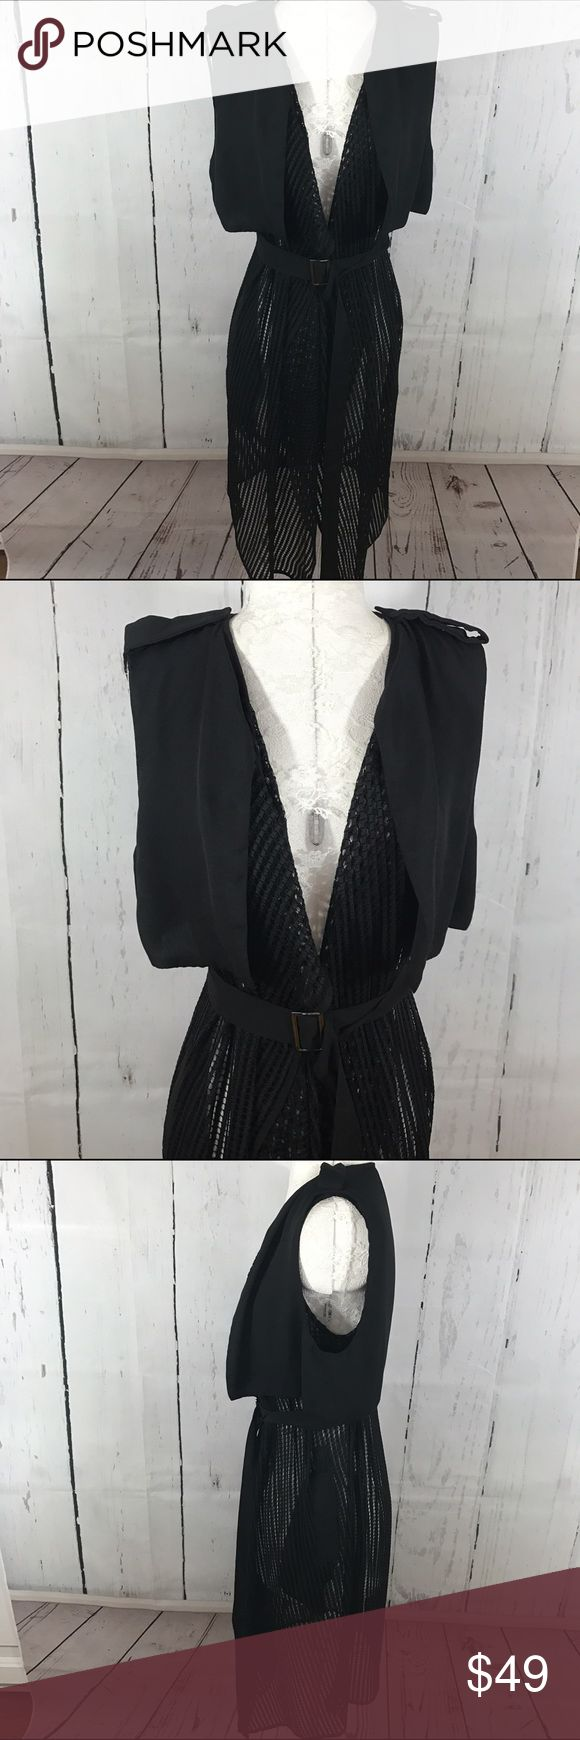 """💜💜 CAGED MINI TRENCH Condition: Euc Approximate measurements (laying flat): 16"""" bust 40"""" length  Item location: rack   **bundles save 10%** no trades/no modeling/no asking for lowest Anthropologie Jackets & Coats Trench Coats"""